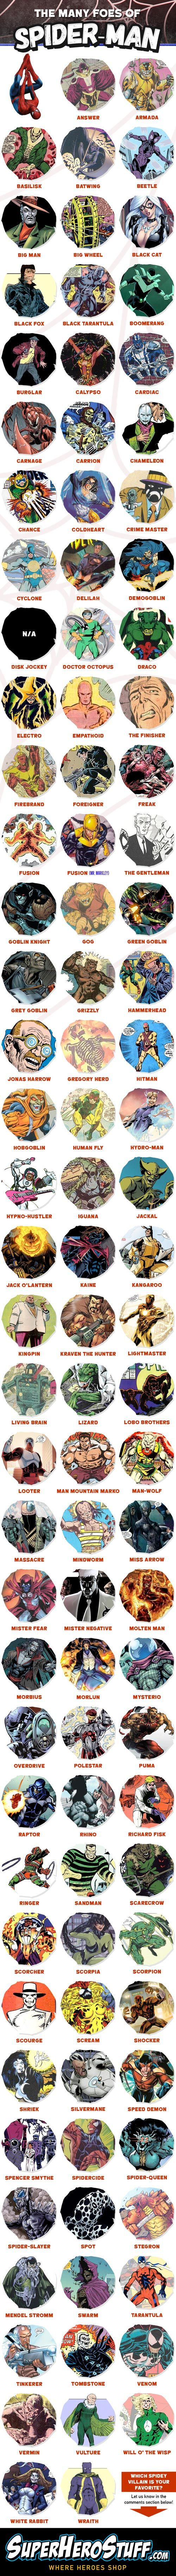 INFOGRAPHIC: The Many Villains of Spider-Man